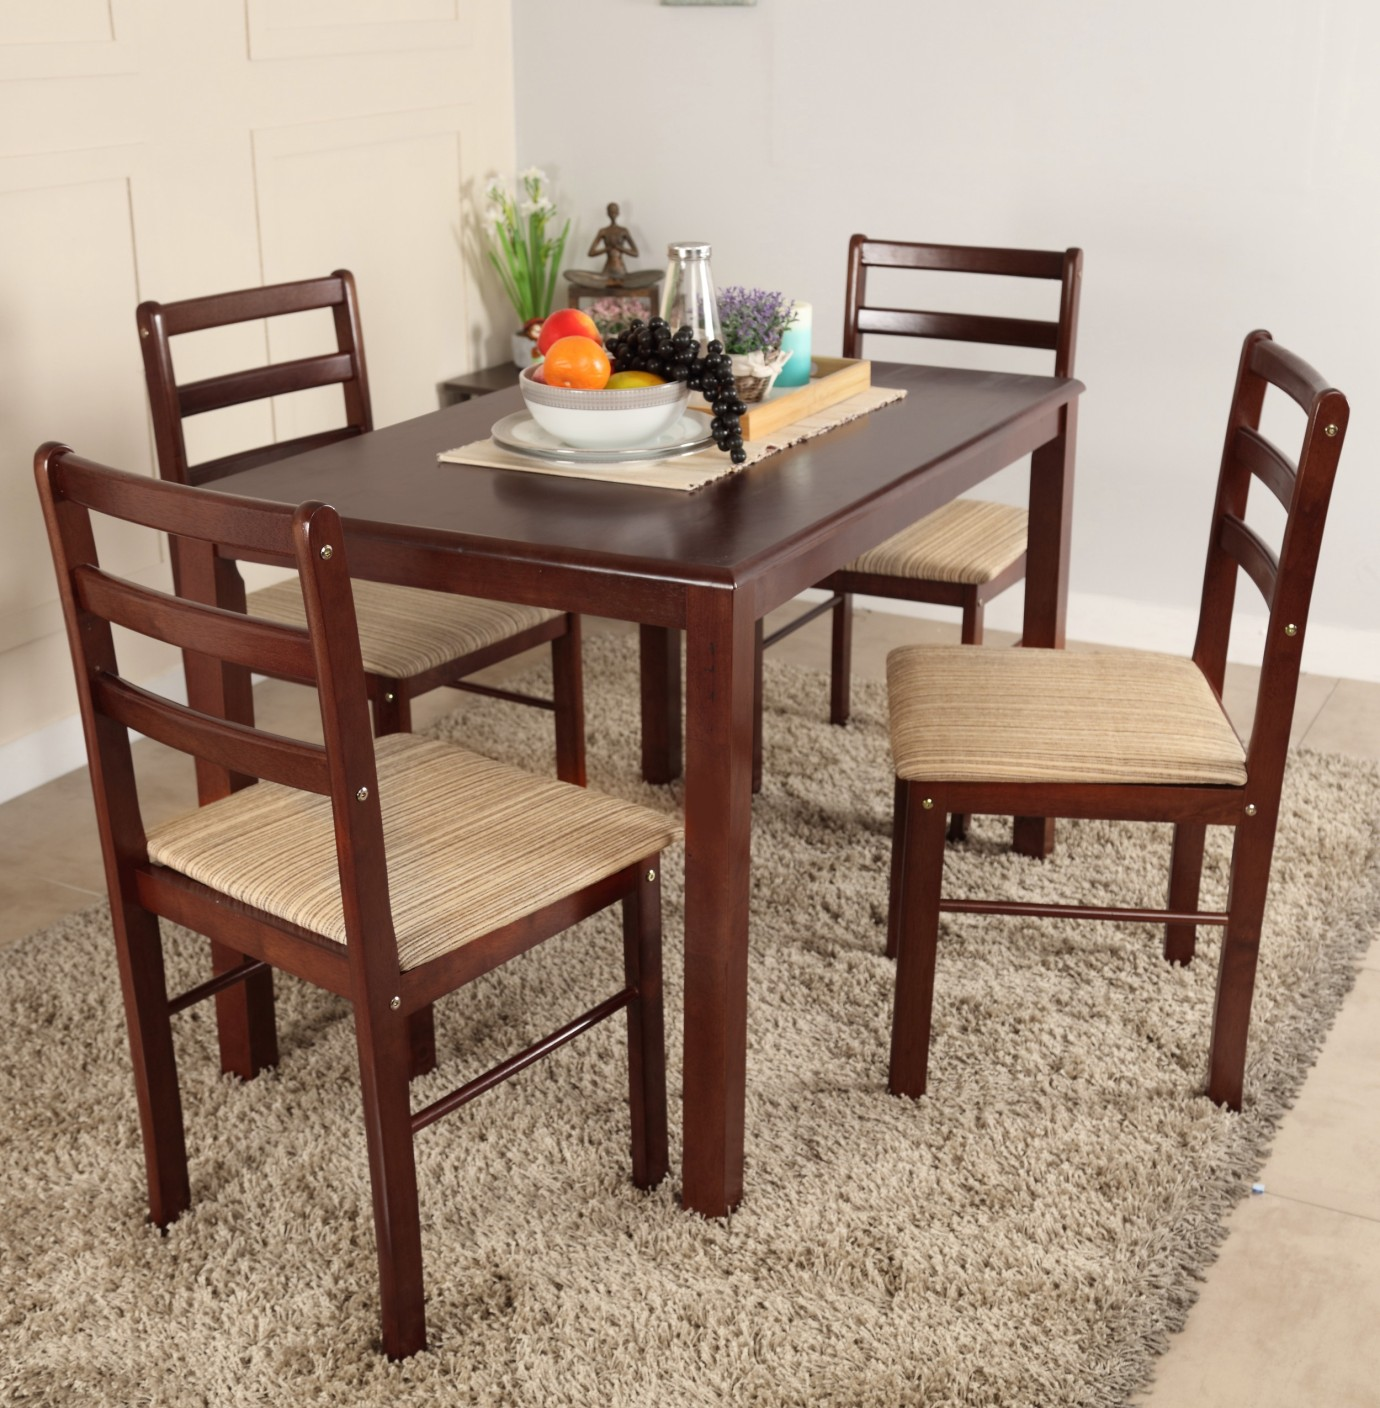 Woodness Solid Wood 4 Seater Dining Set Price in India